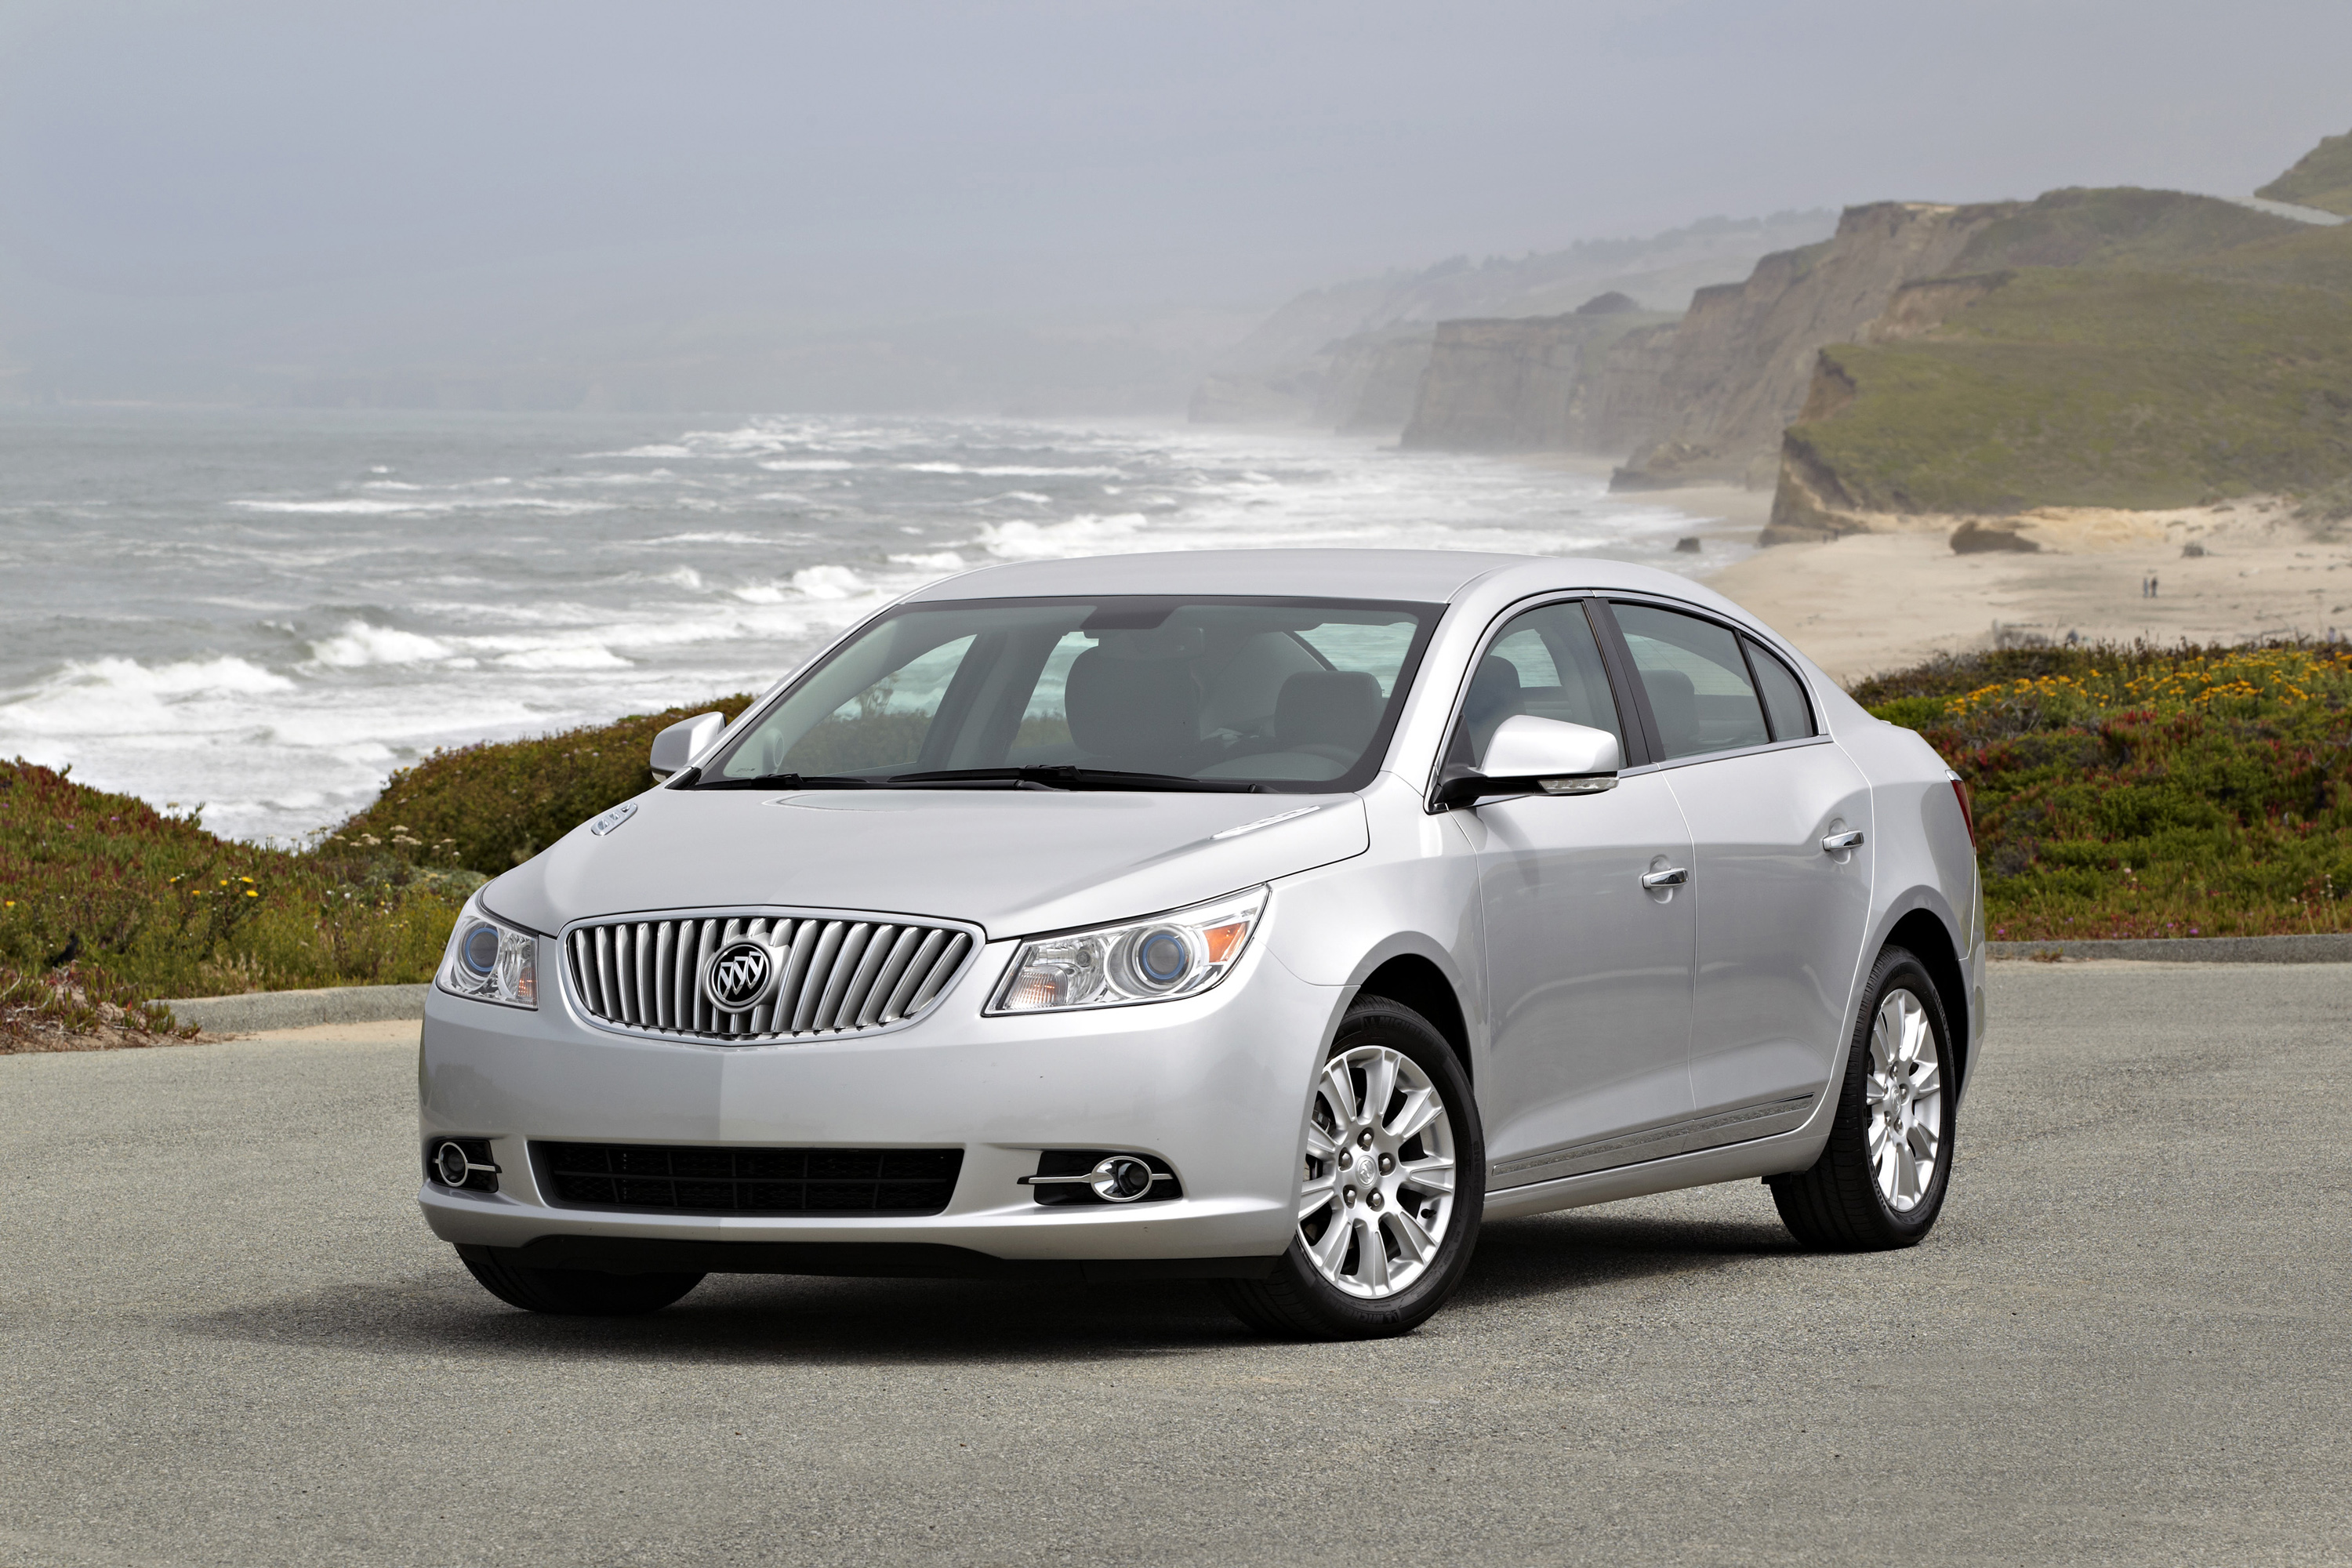 verano rumors coming new buick specs and front cars concept out angle performance